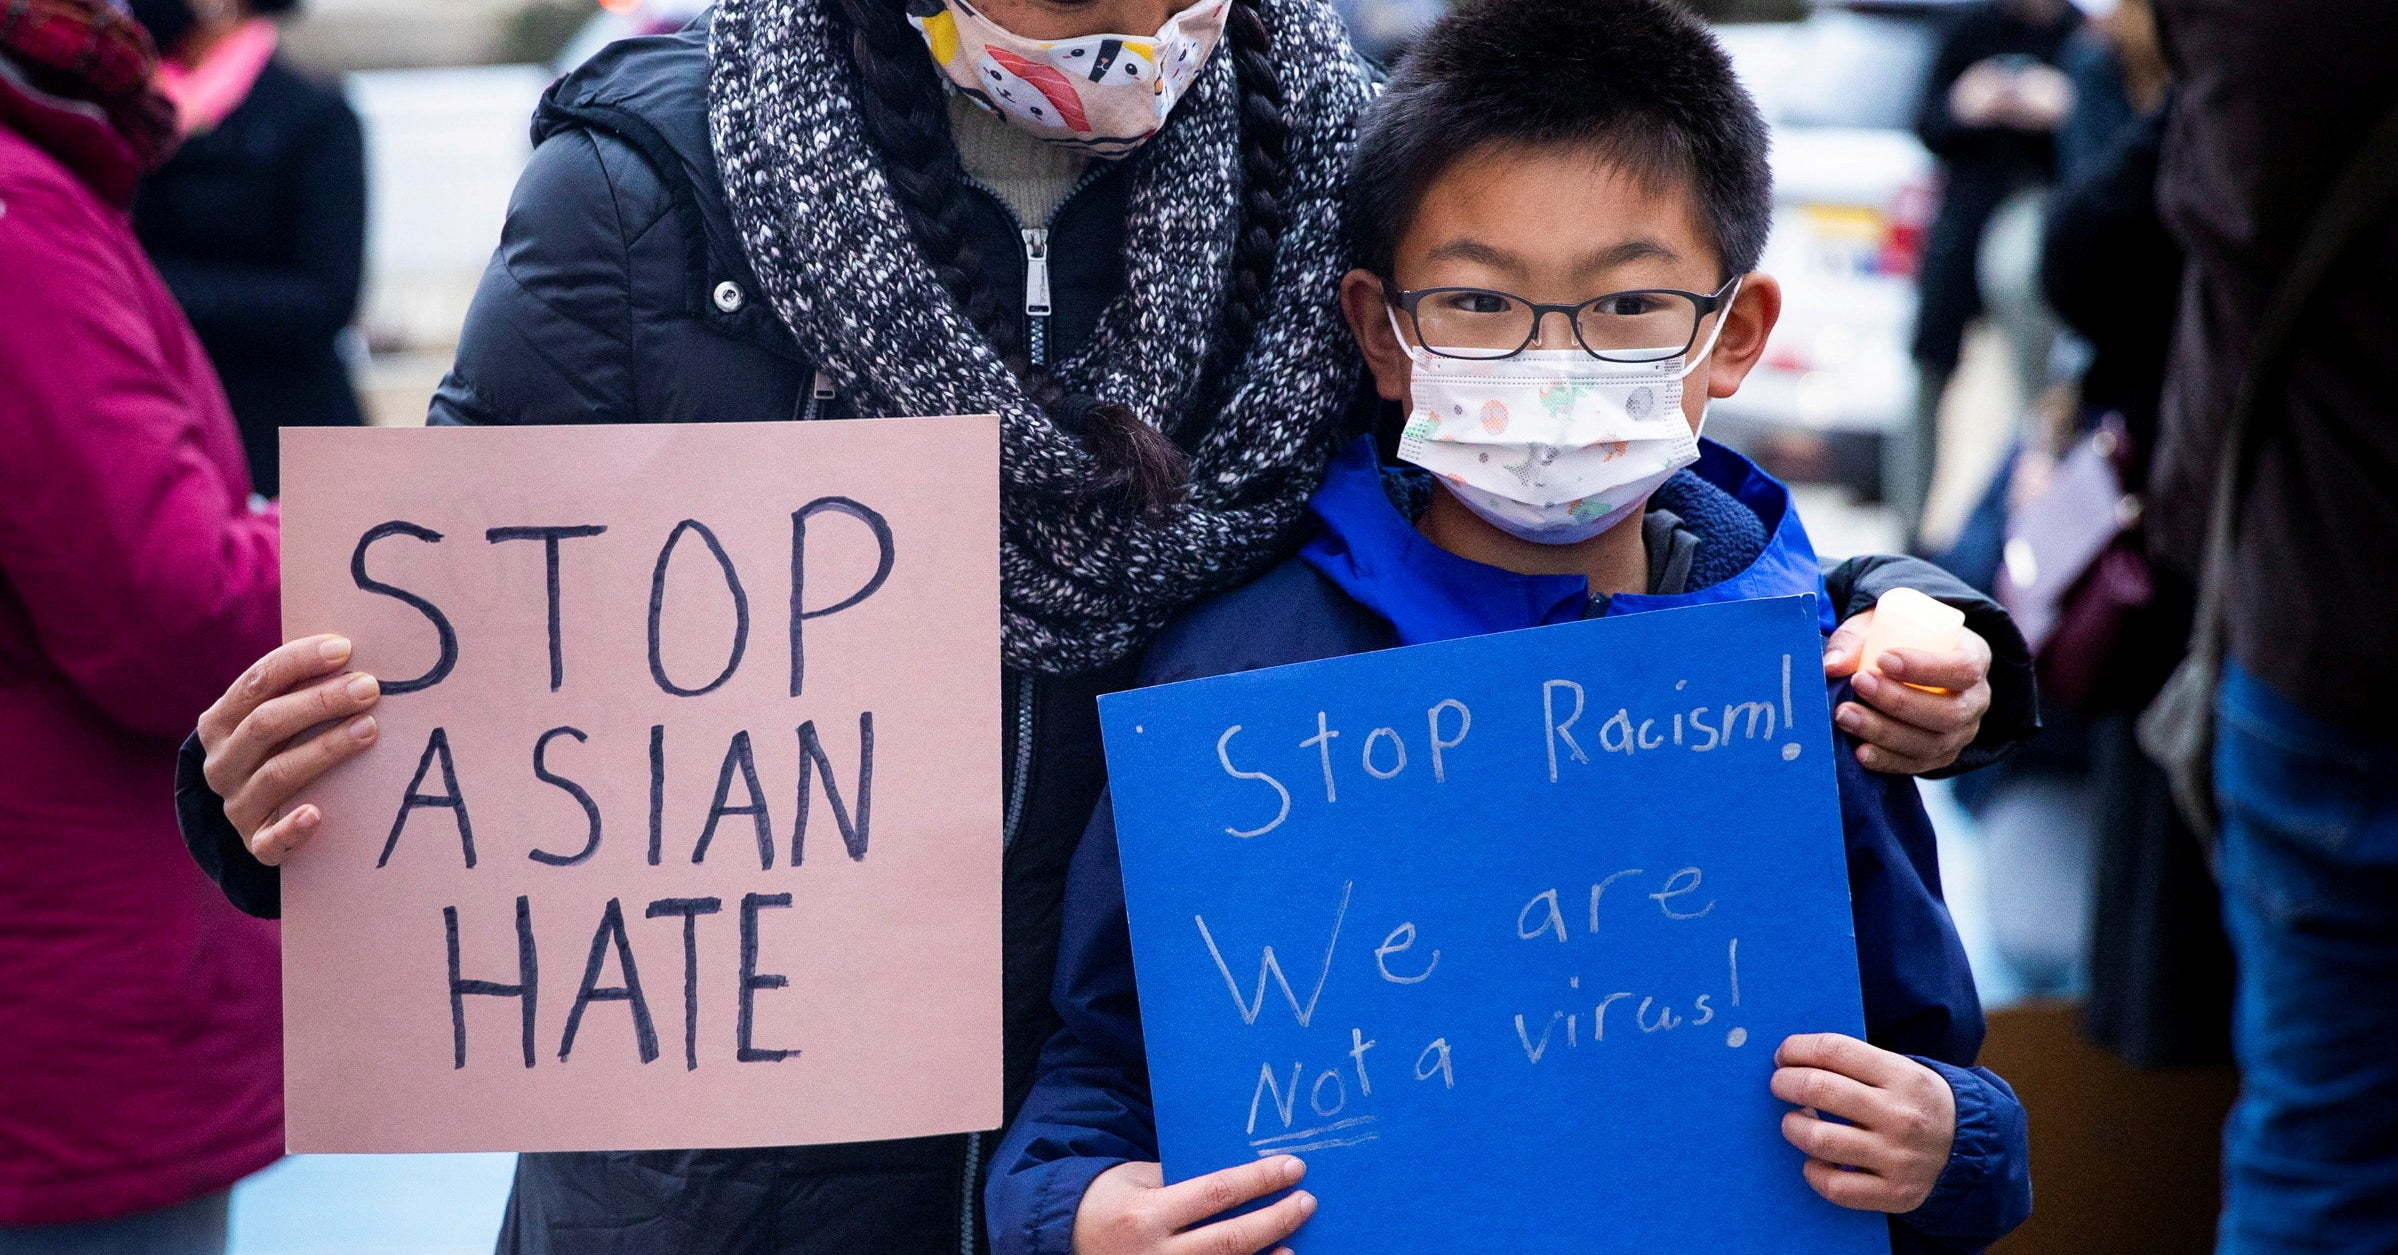 www.buzzfeednews.com: Asian Americans Have Been Protesting Violence Against Their Community For Months